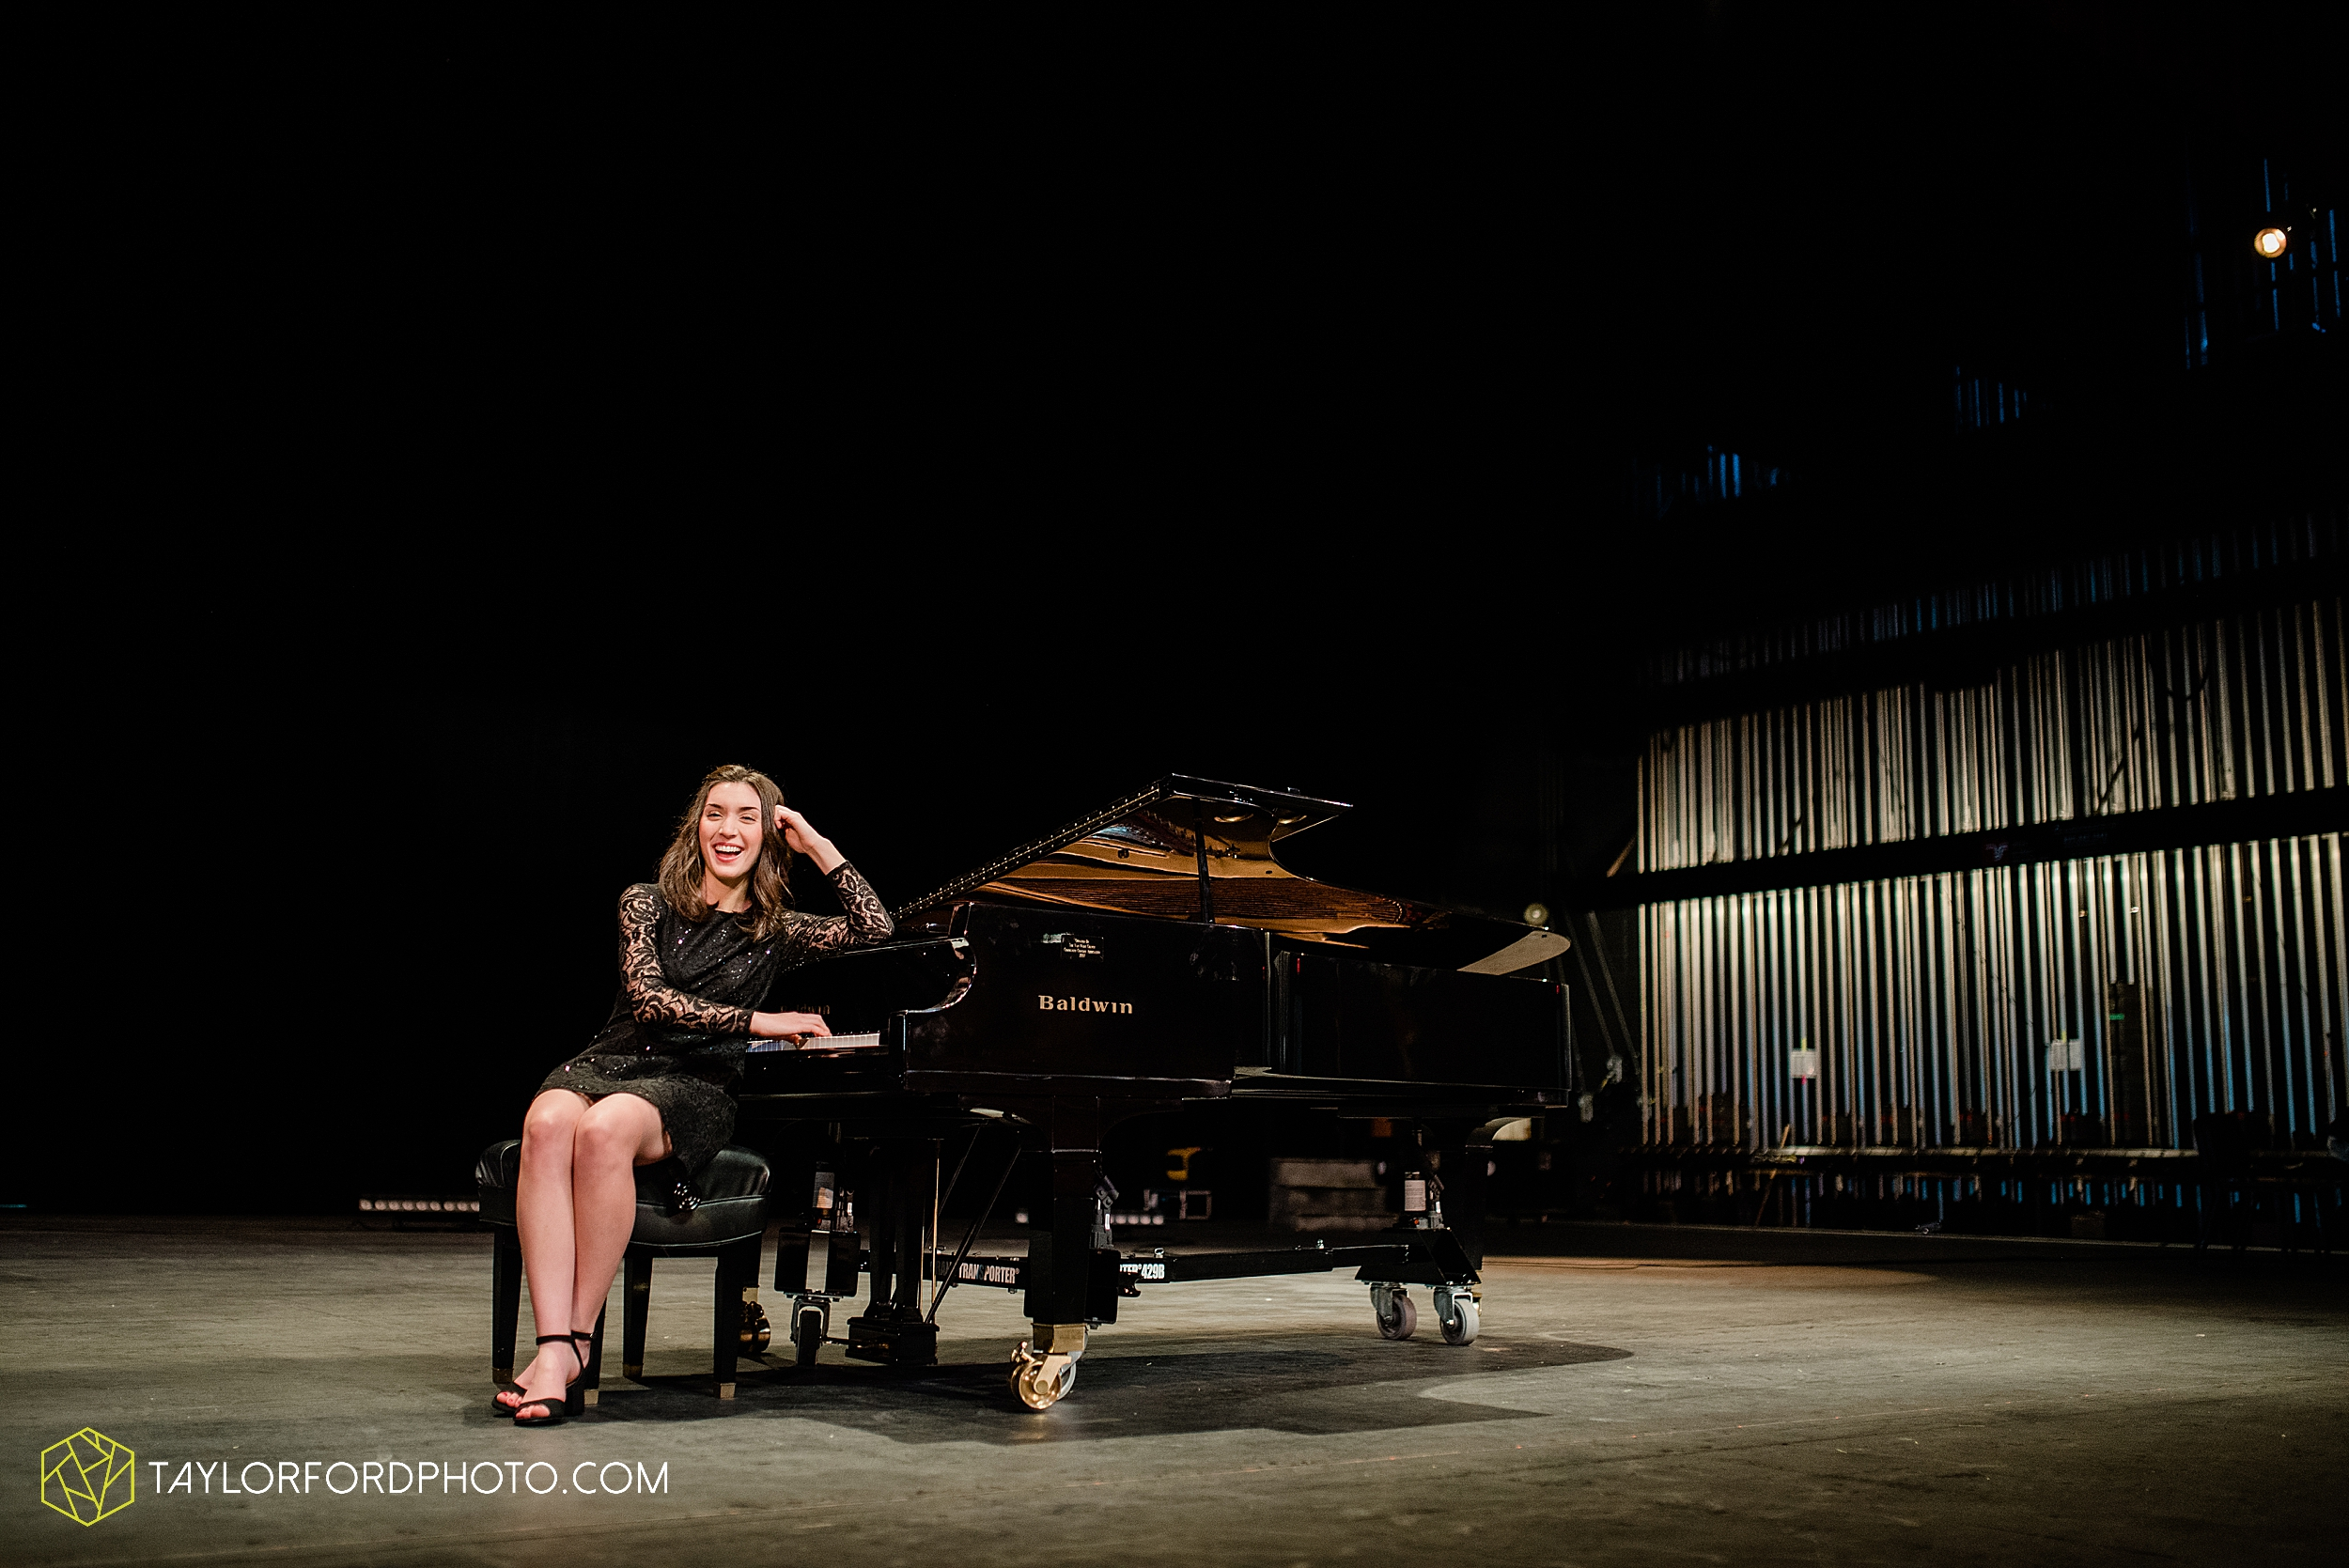 niswonger-performing-arts-center-senior-grand-piano-van-wert-ohio-photography-taylor-ford-hirschy-photographer_2111.jpg